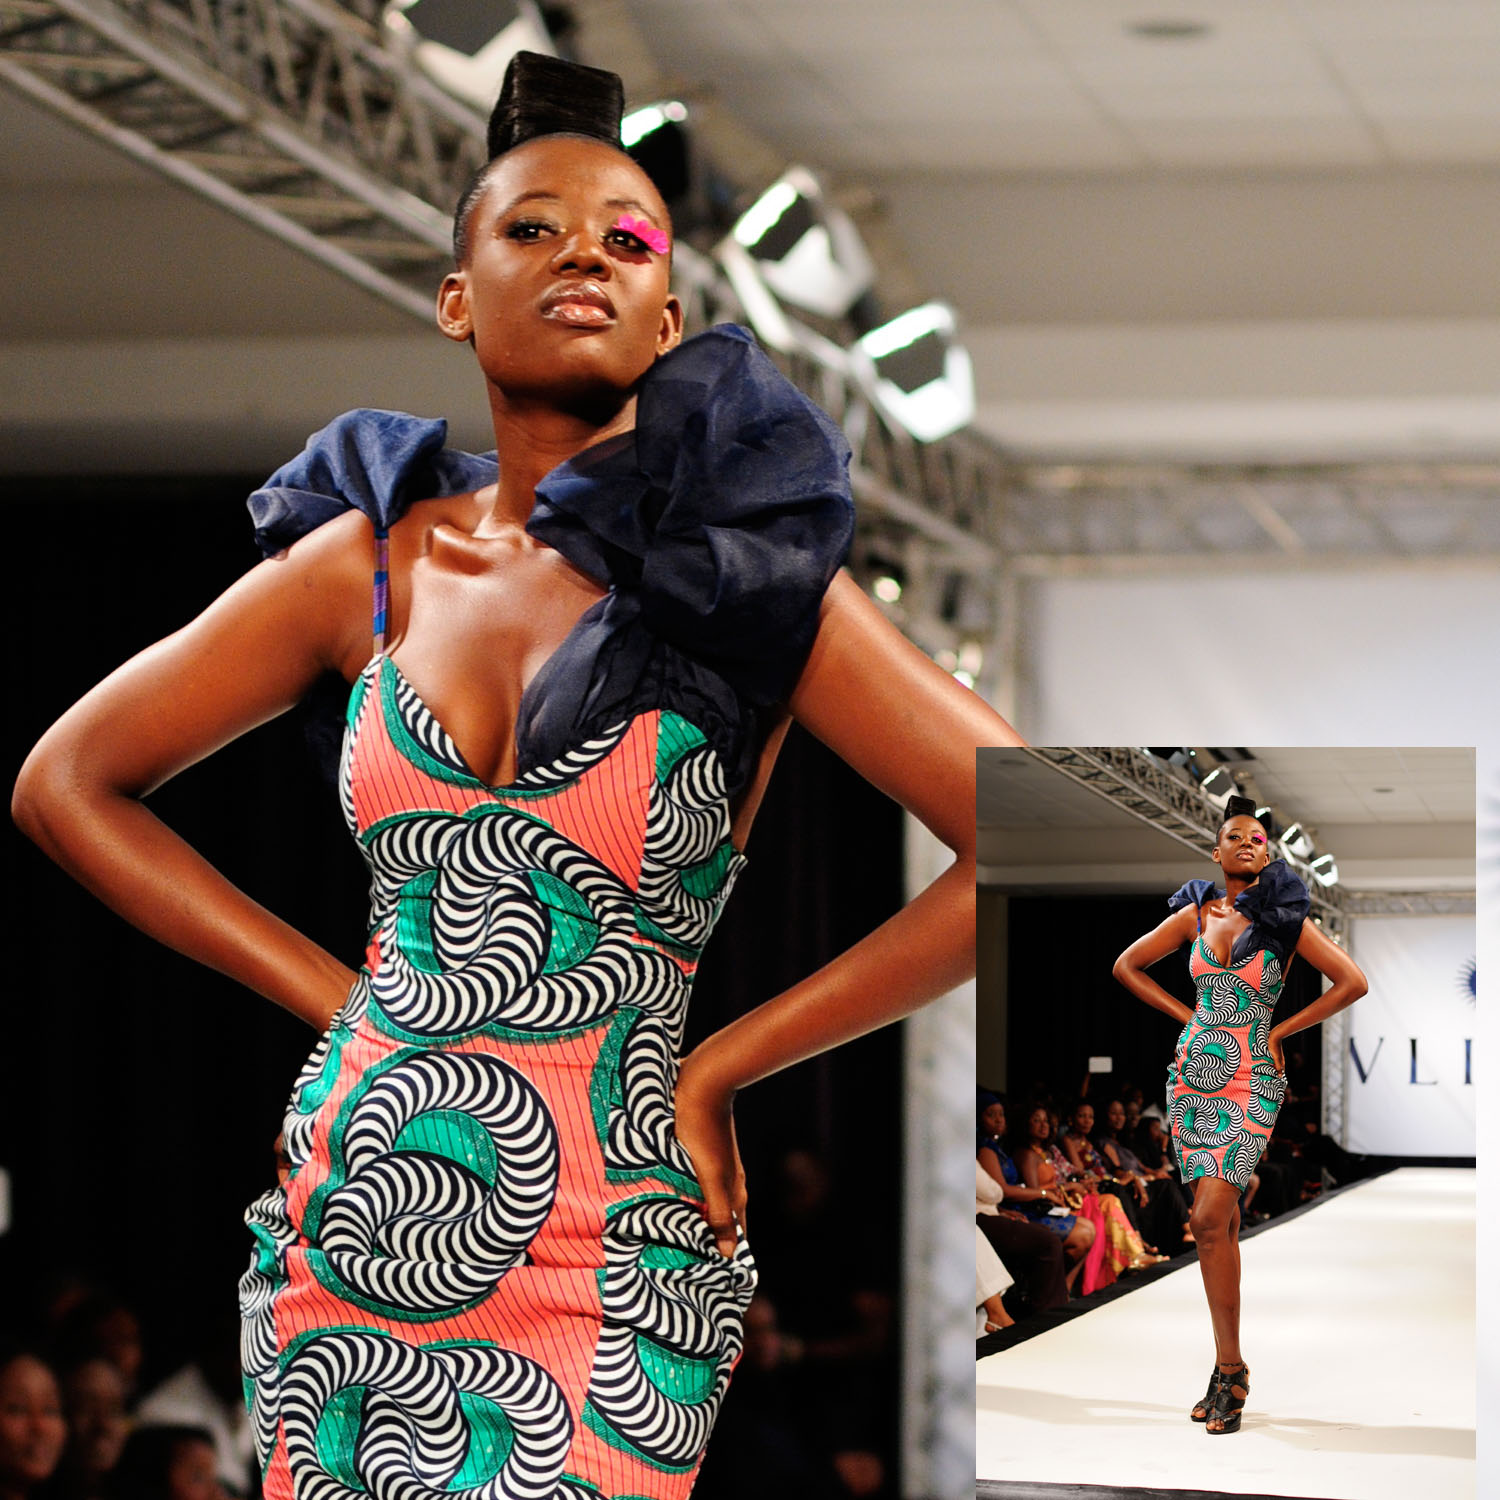 Lookbook mina evans for vlisco dazzling graphics ciaafrique african fashion beauty style Ciaafrique fashion beauty style